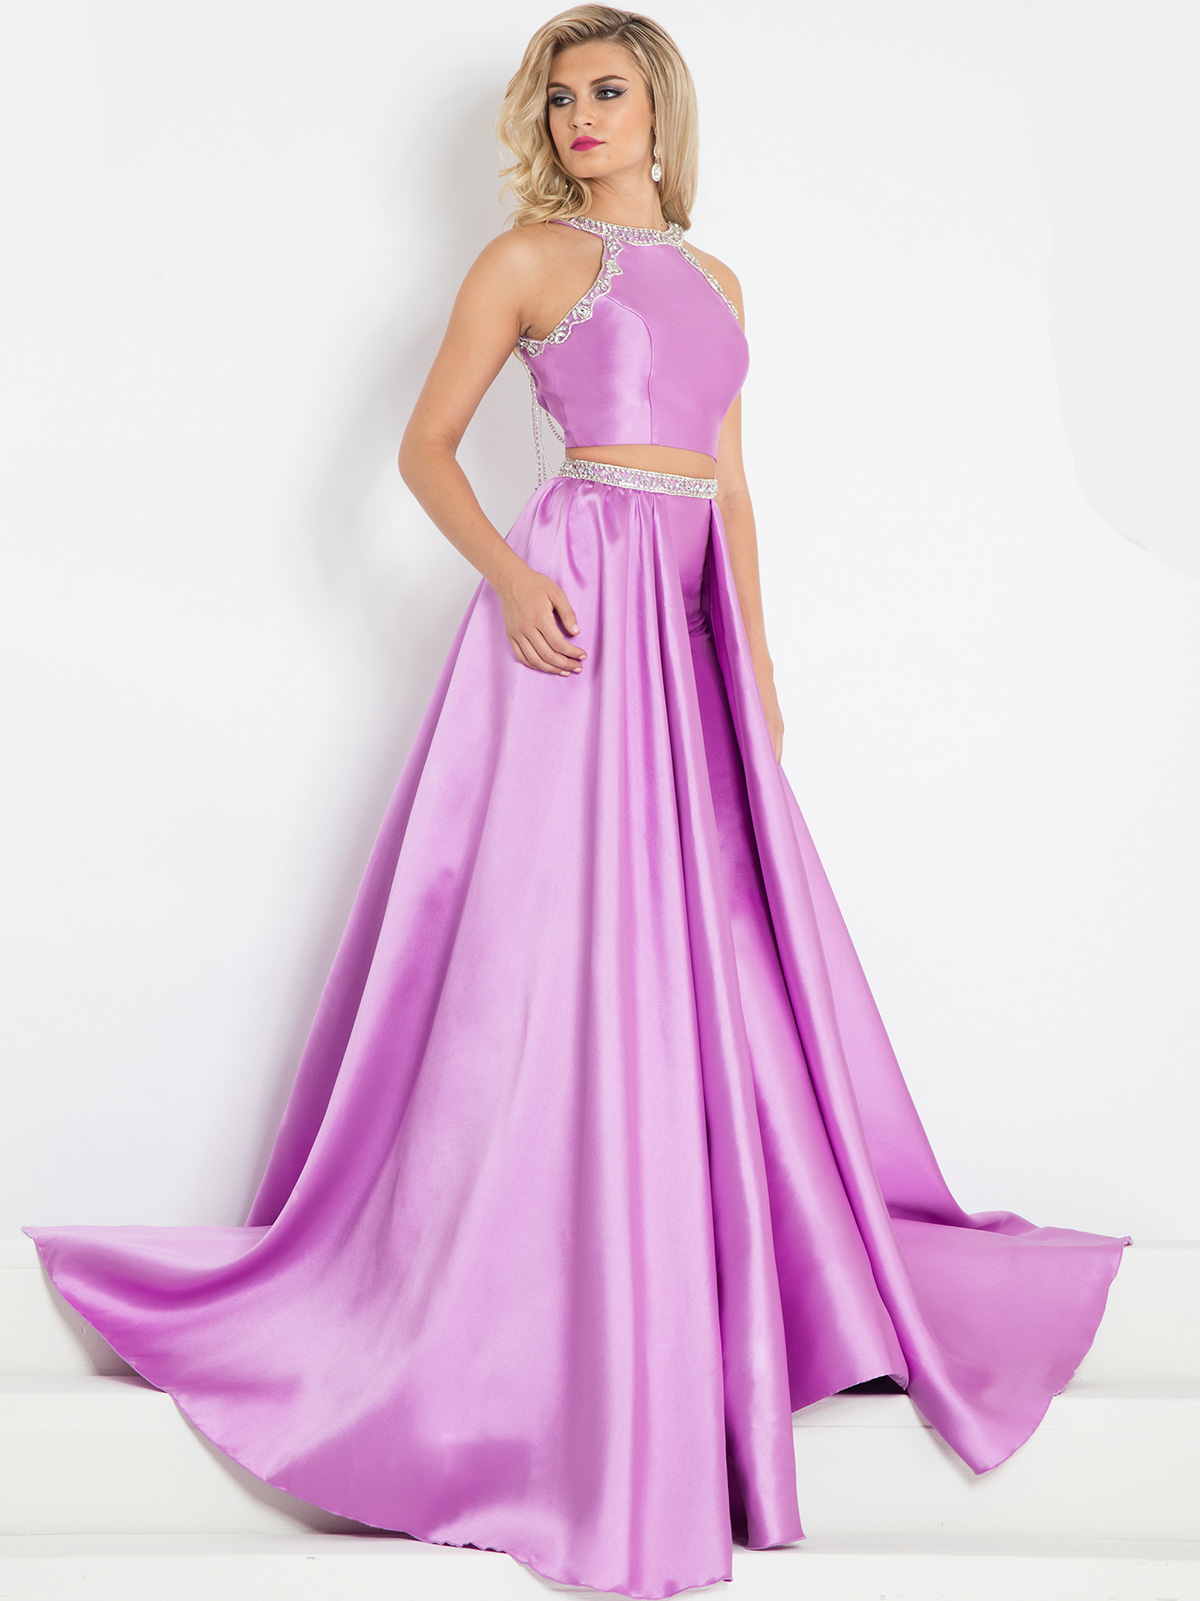 Prima Donna Winning Pageant Dresses | PageantDesigns.com